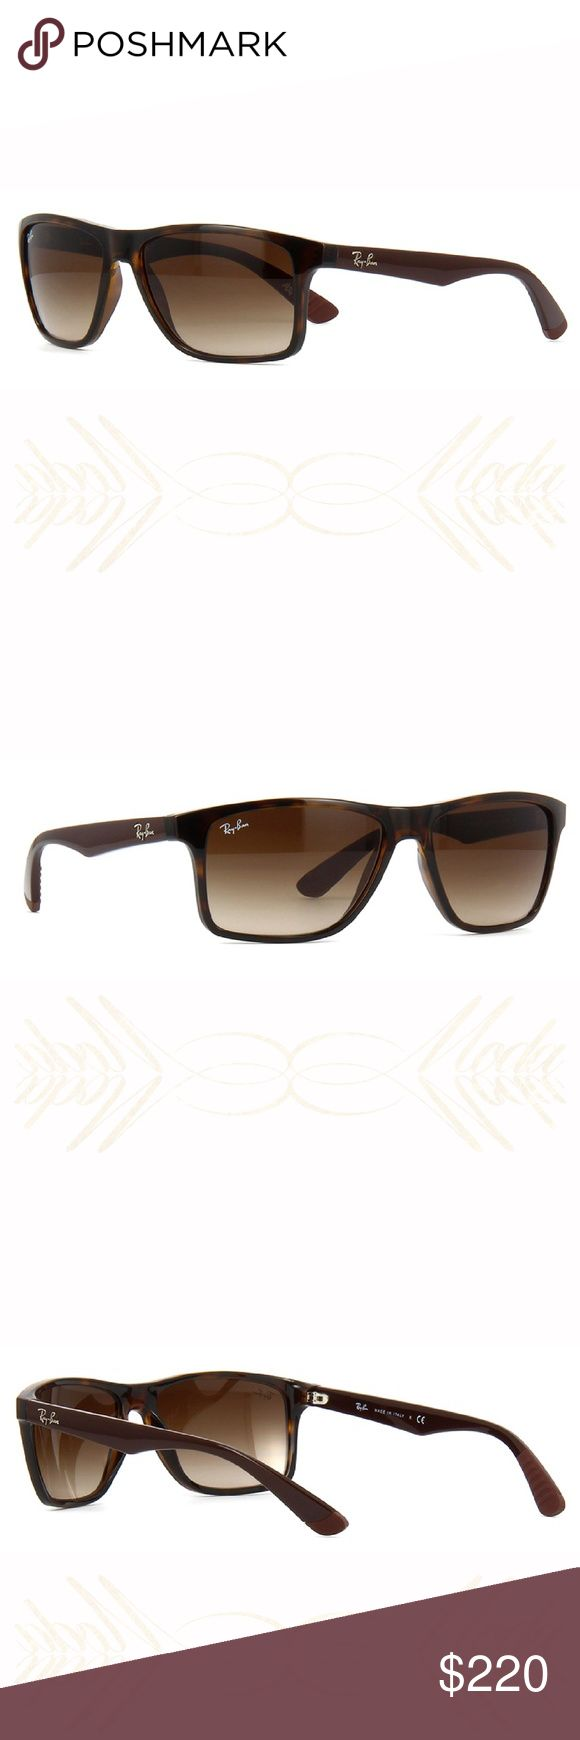 NWT Ray Ban RB4234 620513-58 Rectangle Sunglasses BRAND NEW AND AUTHENTIC  Ray Ban Sunglasses RB 4234 Tortoise 6205/13  Gender: Unisex Men / Women Frame Color: Havana Lens Color: Brown Gradient Frame Shape: Rectangle Frame Type: Full Rim Model Number: RB4234 Colour Code: 6205/13 Lens Size: 58mm Bridge Size: 16mm Temple Length: 140mm Material: Acetate Polarised: Not Polarised Best Fit: Round/Oval Faces  Comes with all Retail Packaging (Box, Dustbag, Case, Cleaning Cloth)  Like Us On Facebook…